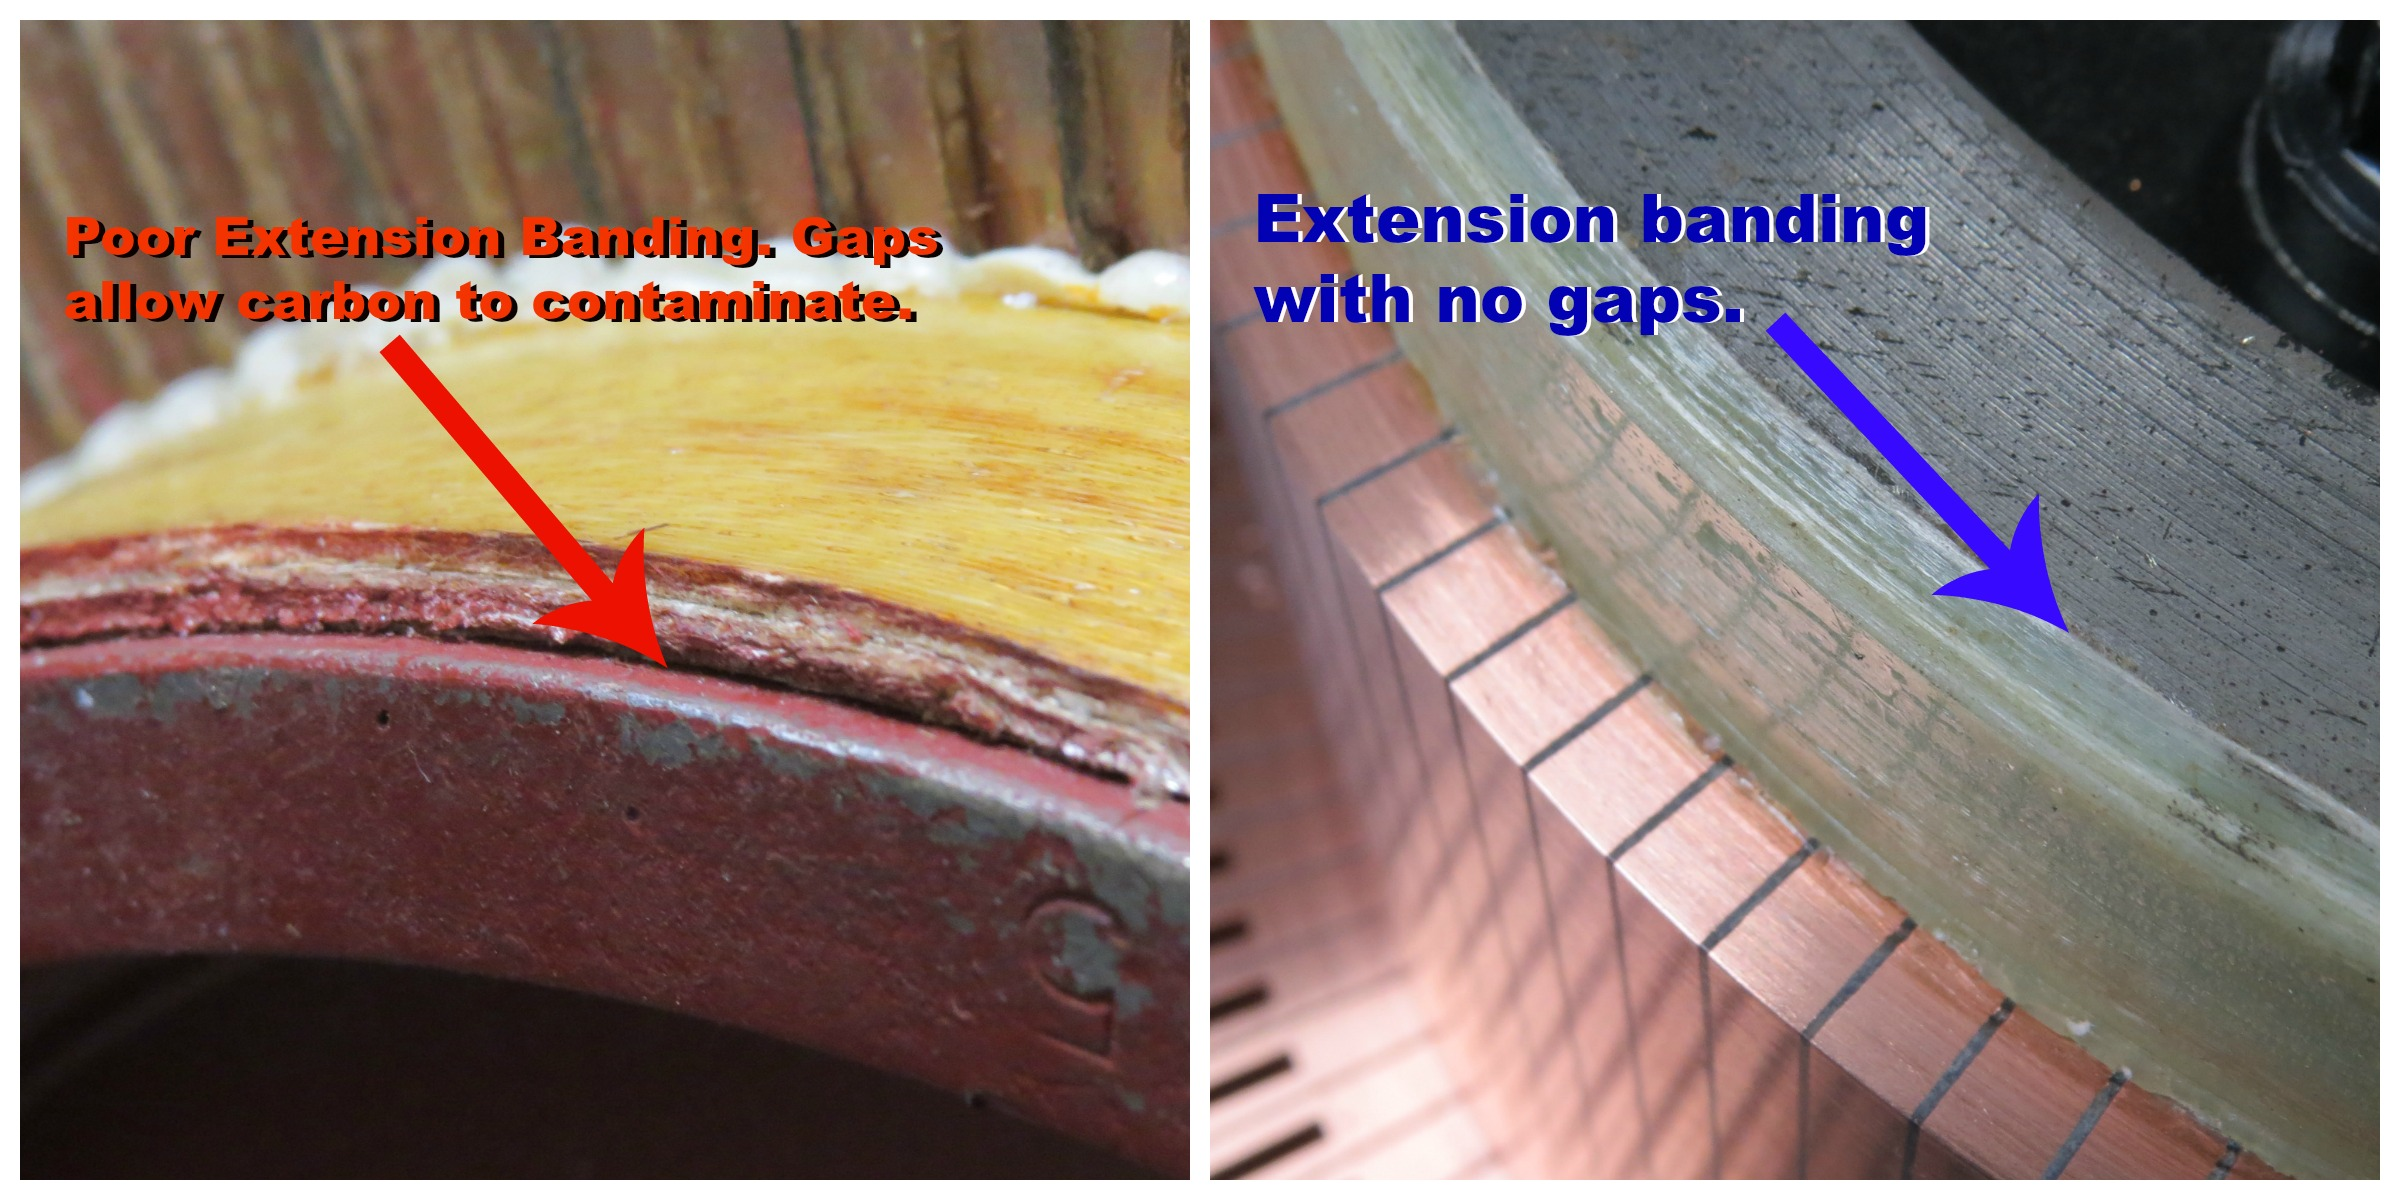 Extension Banding